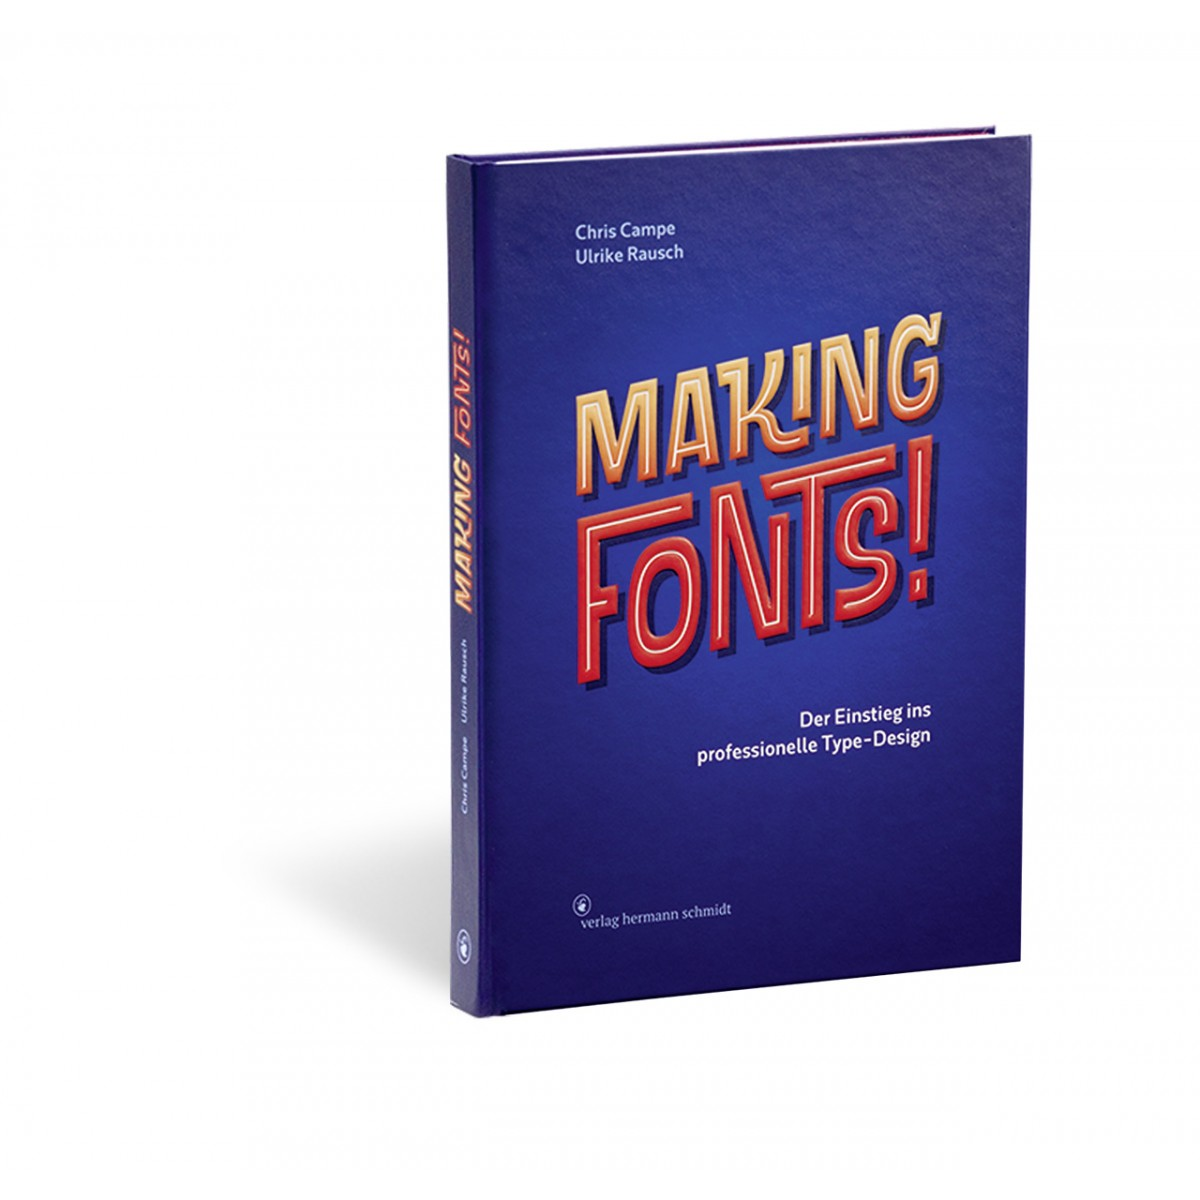 Chris Campe | Ulrike Rausch - Making Fonts! Der Einstieg ins professionelle Type-Design